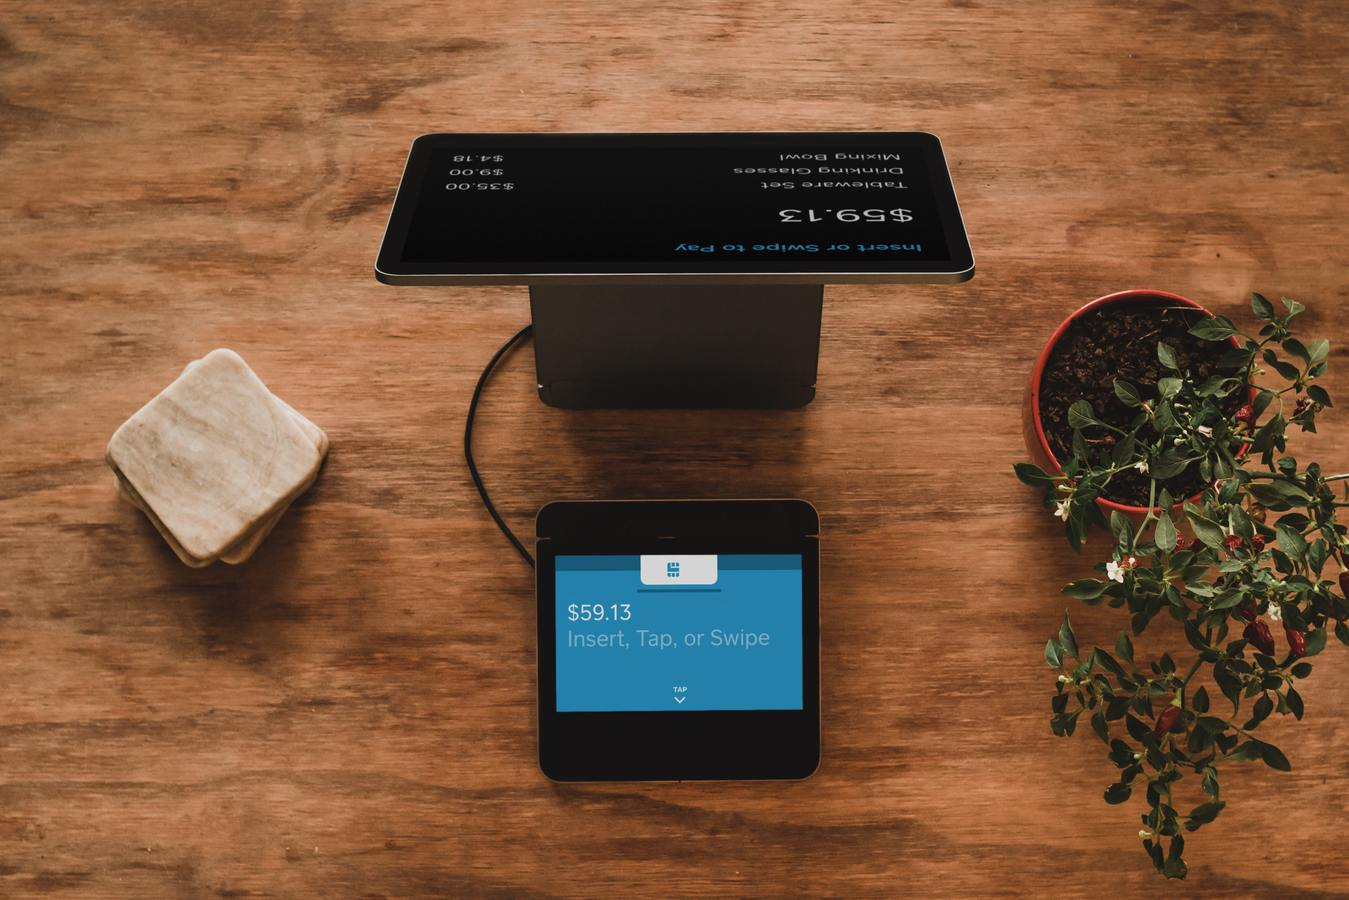 payment pad and tablet on a wooden desk